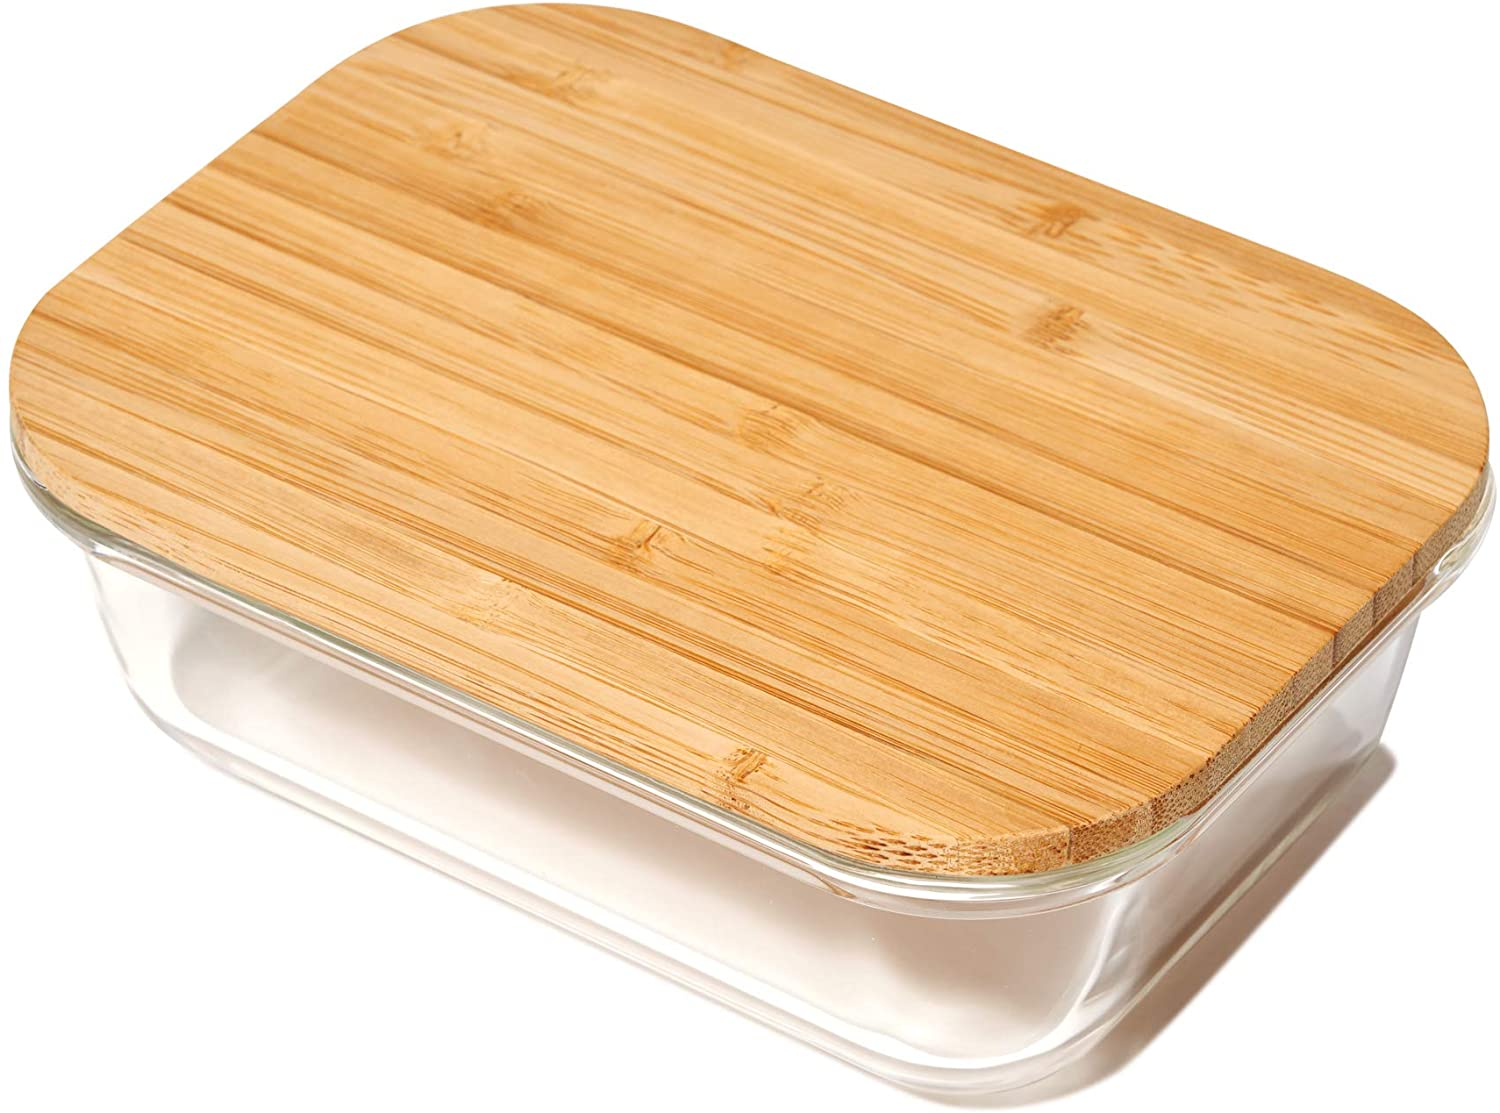 Greener Chef Glass Food Storage Containers with Bamboo Lids (370 mL)